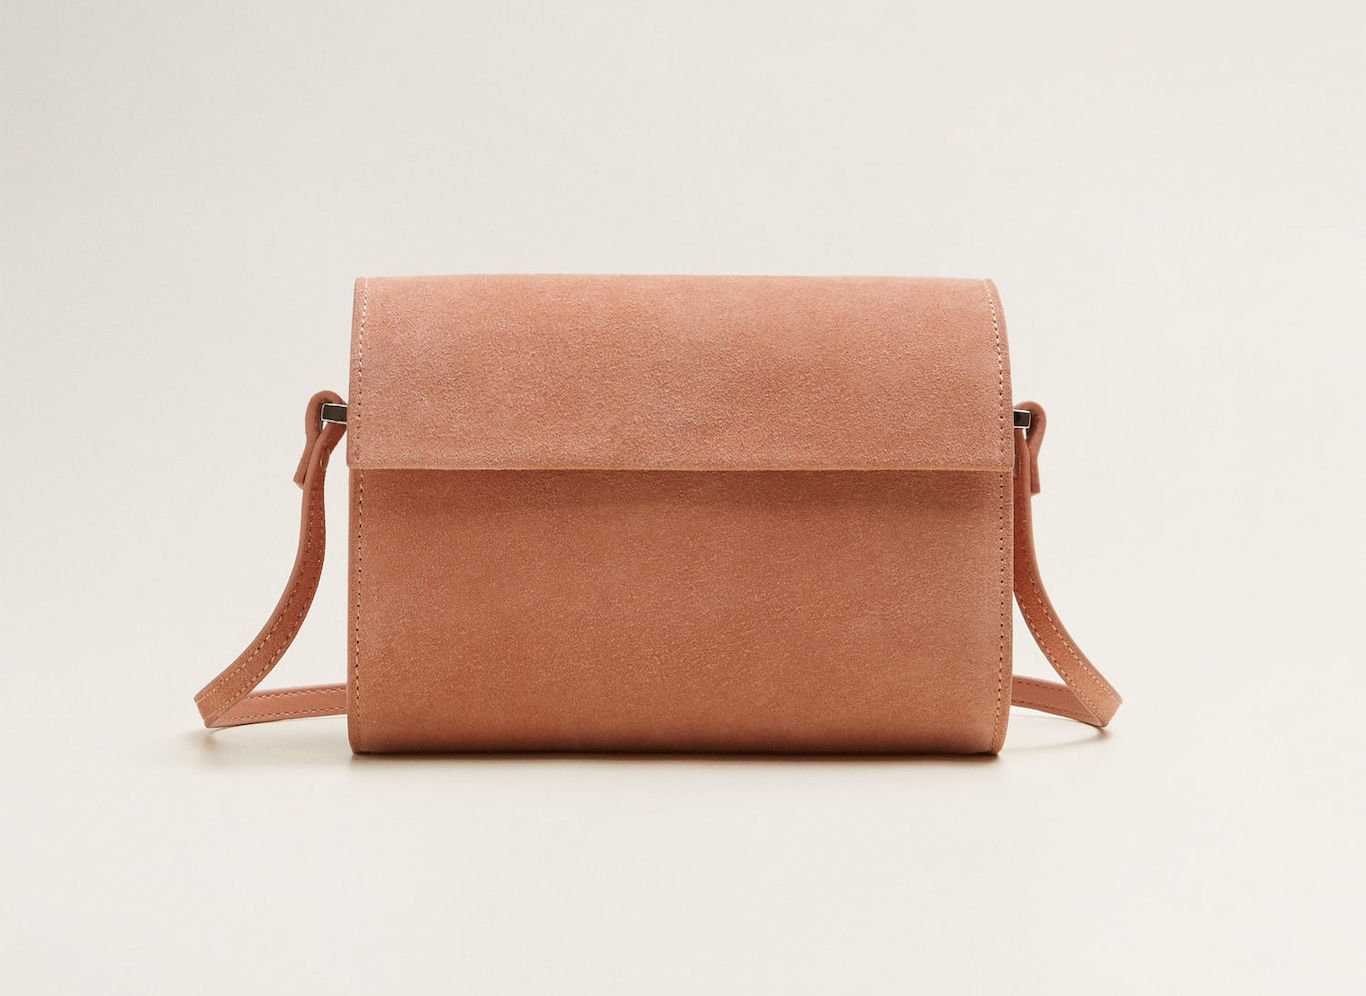 Mango Flap Leather bag in pink